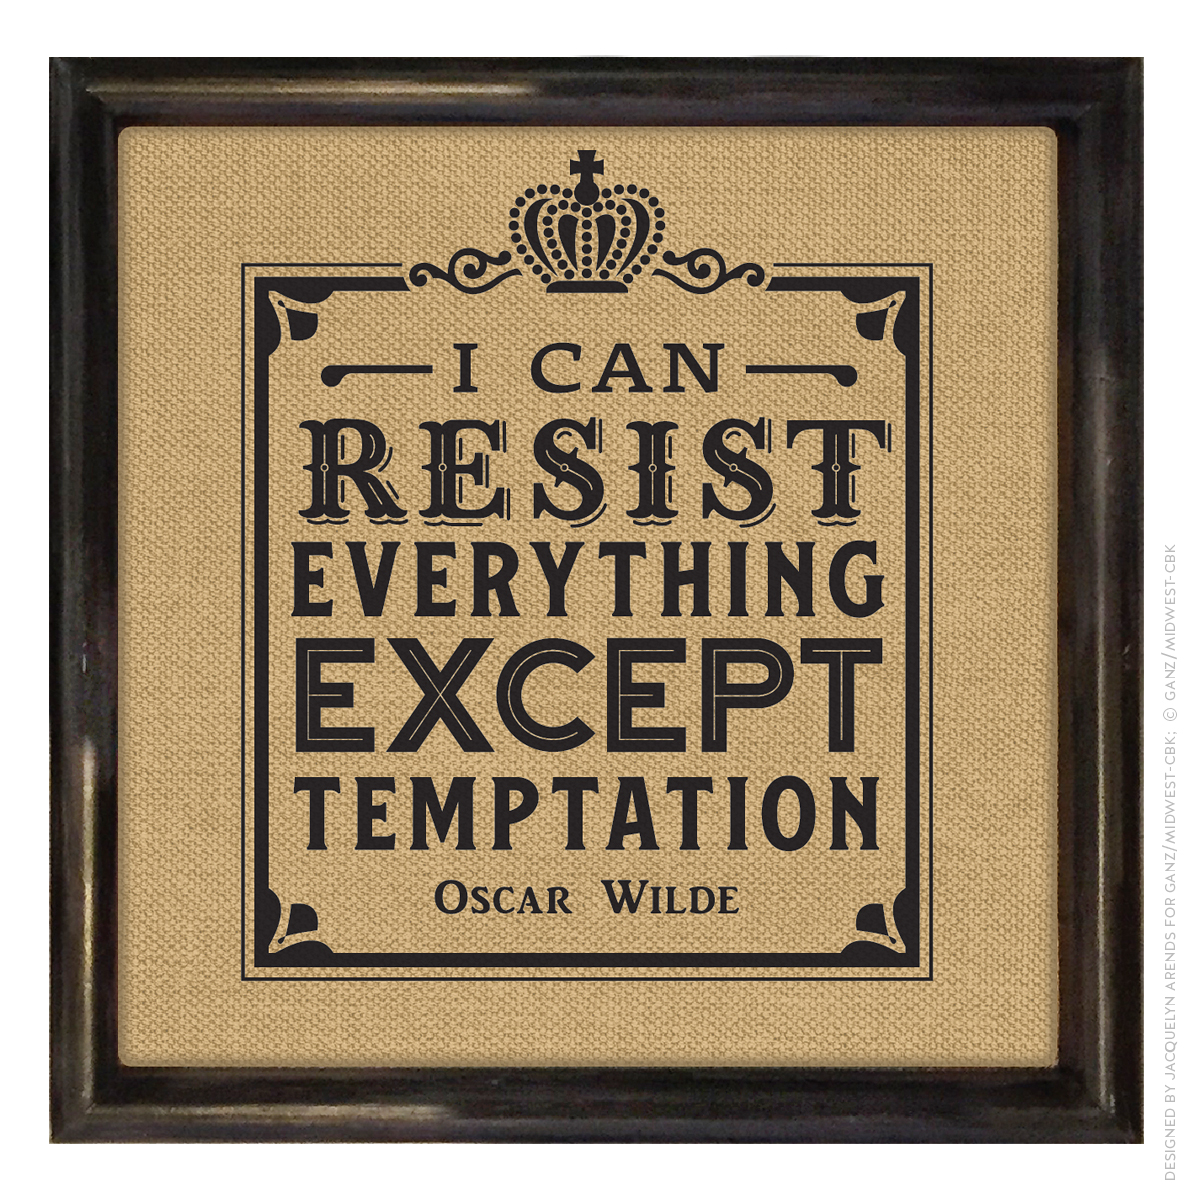 Men's Gift 2018 - Oscar Wilde quote wall decor; © Ganz/Midwest-CBK 2018